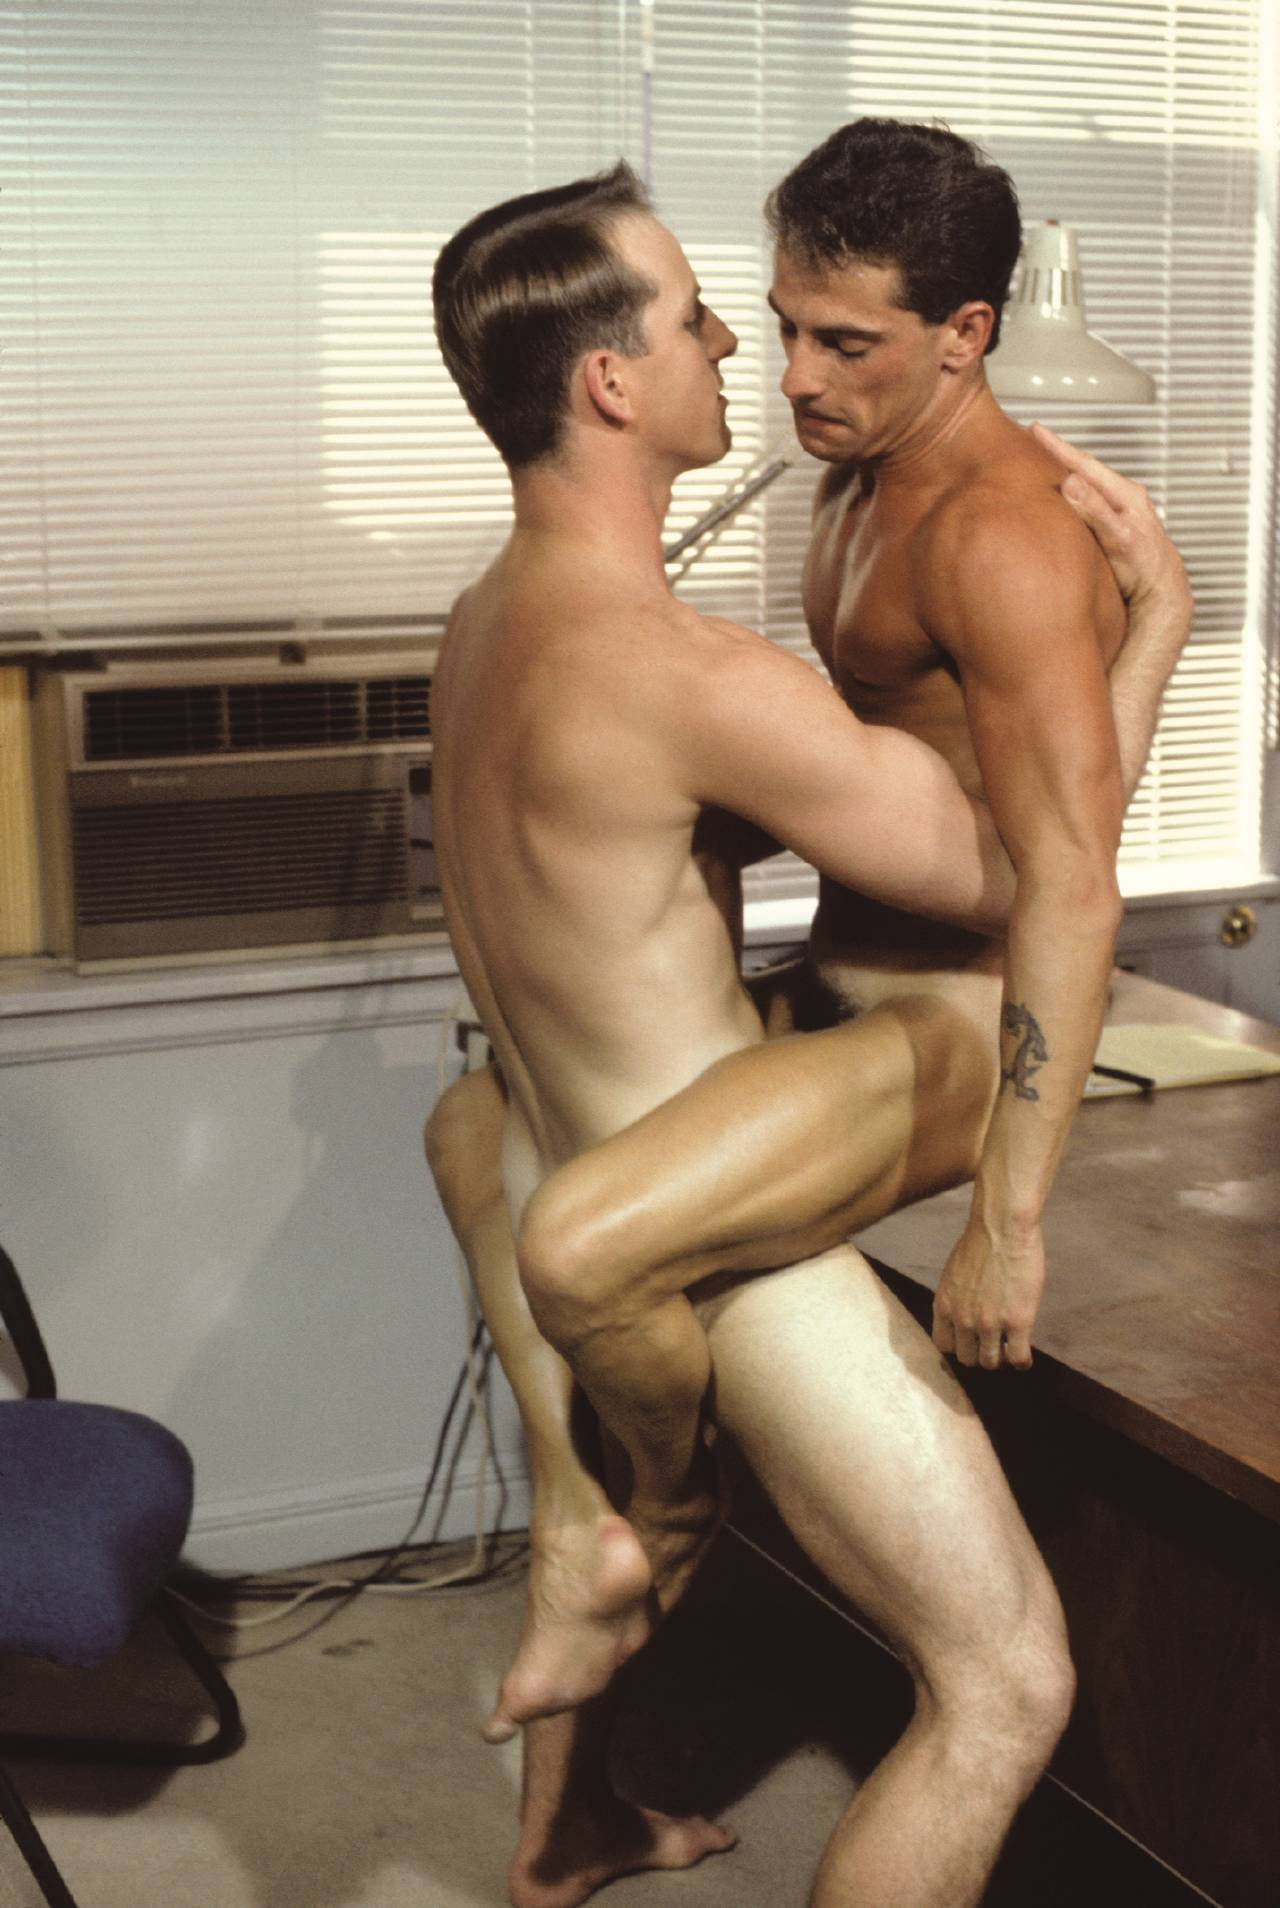 Dick Masters fuck Rick Coleman gay vintage hot daddy dude men porn Manrammers